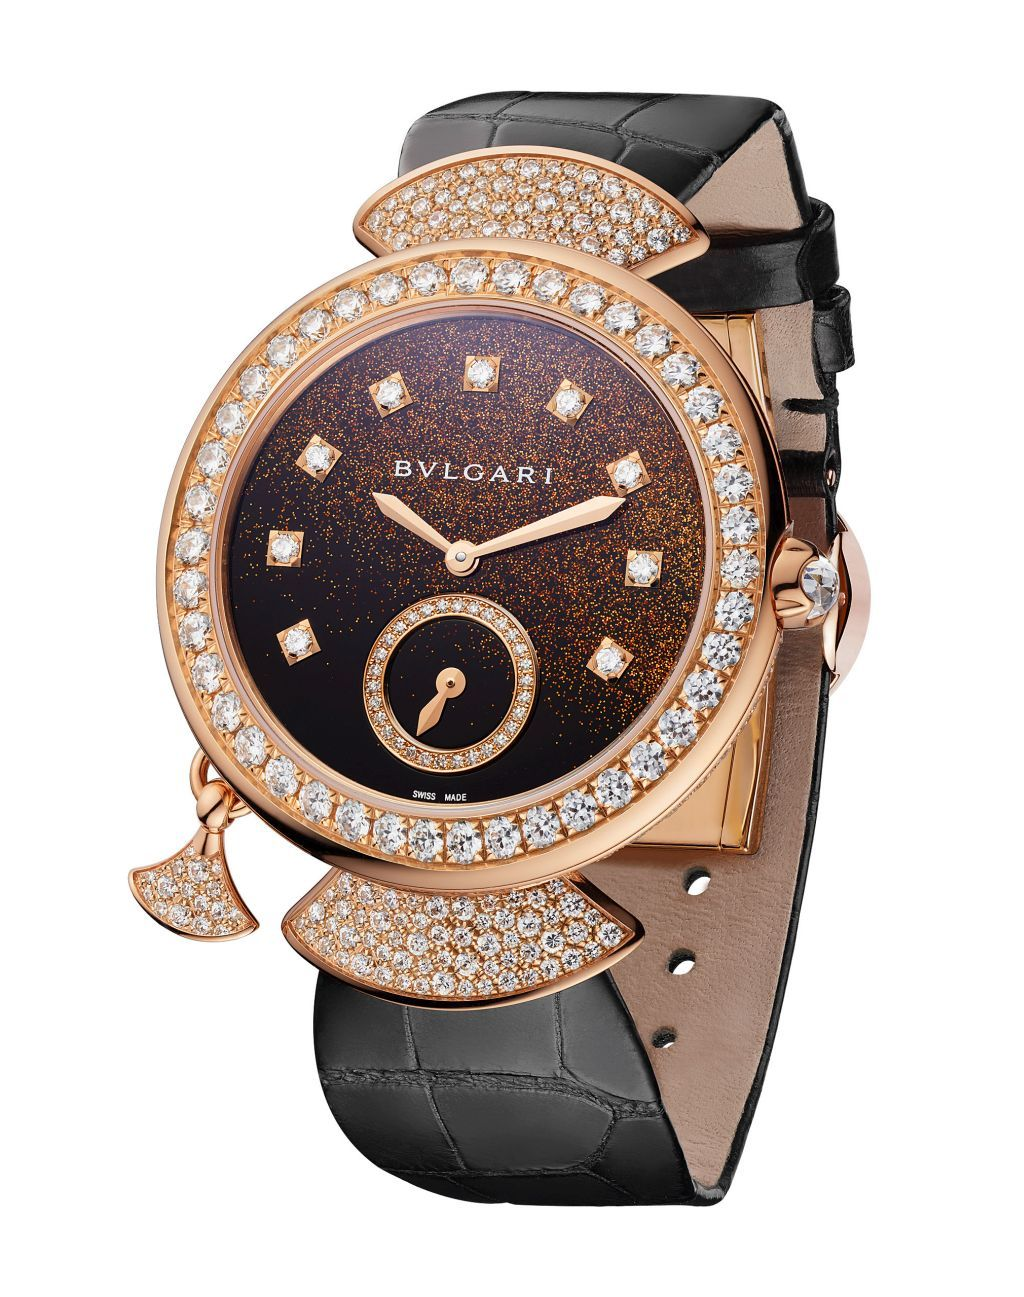 titan watch watches en ladies i item uae valentine xl aed buy ae souq